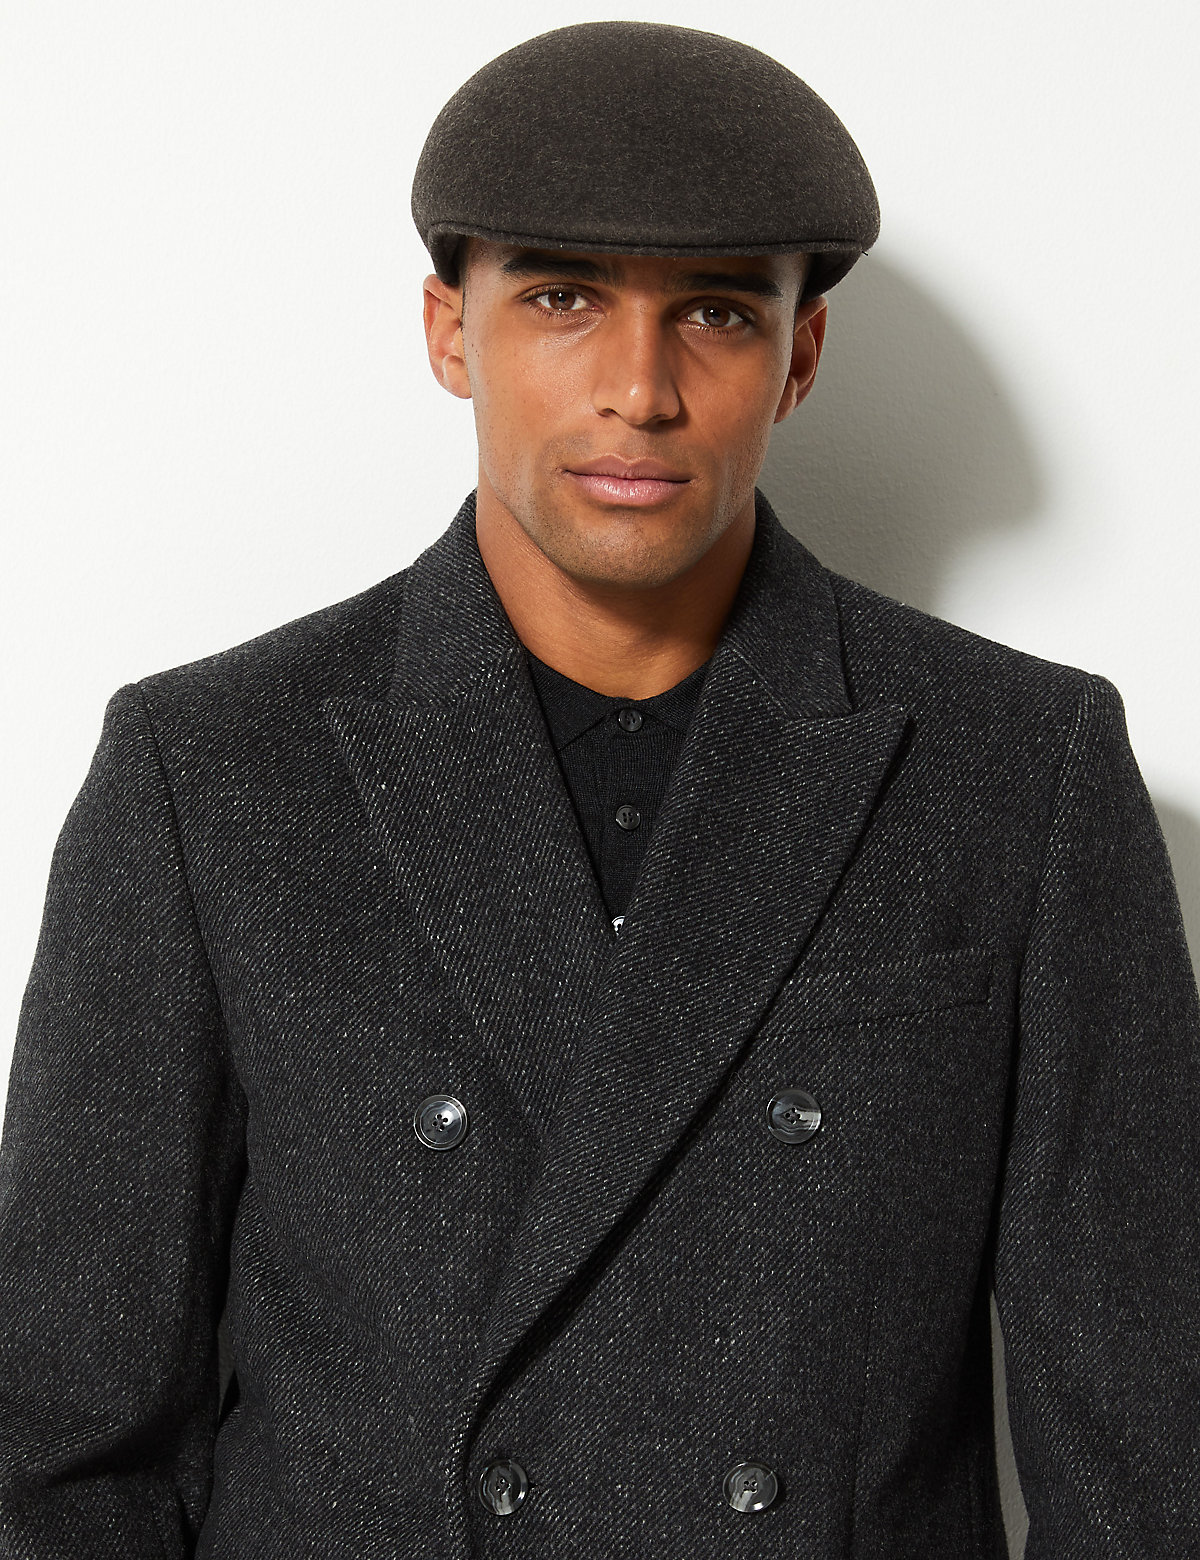 f996771f4a6c2 M S Collection Pure Wool Flat Cap with Stormwear